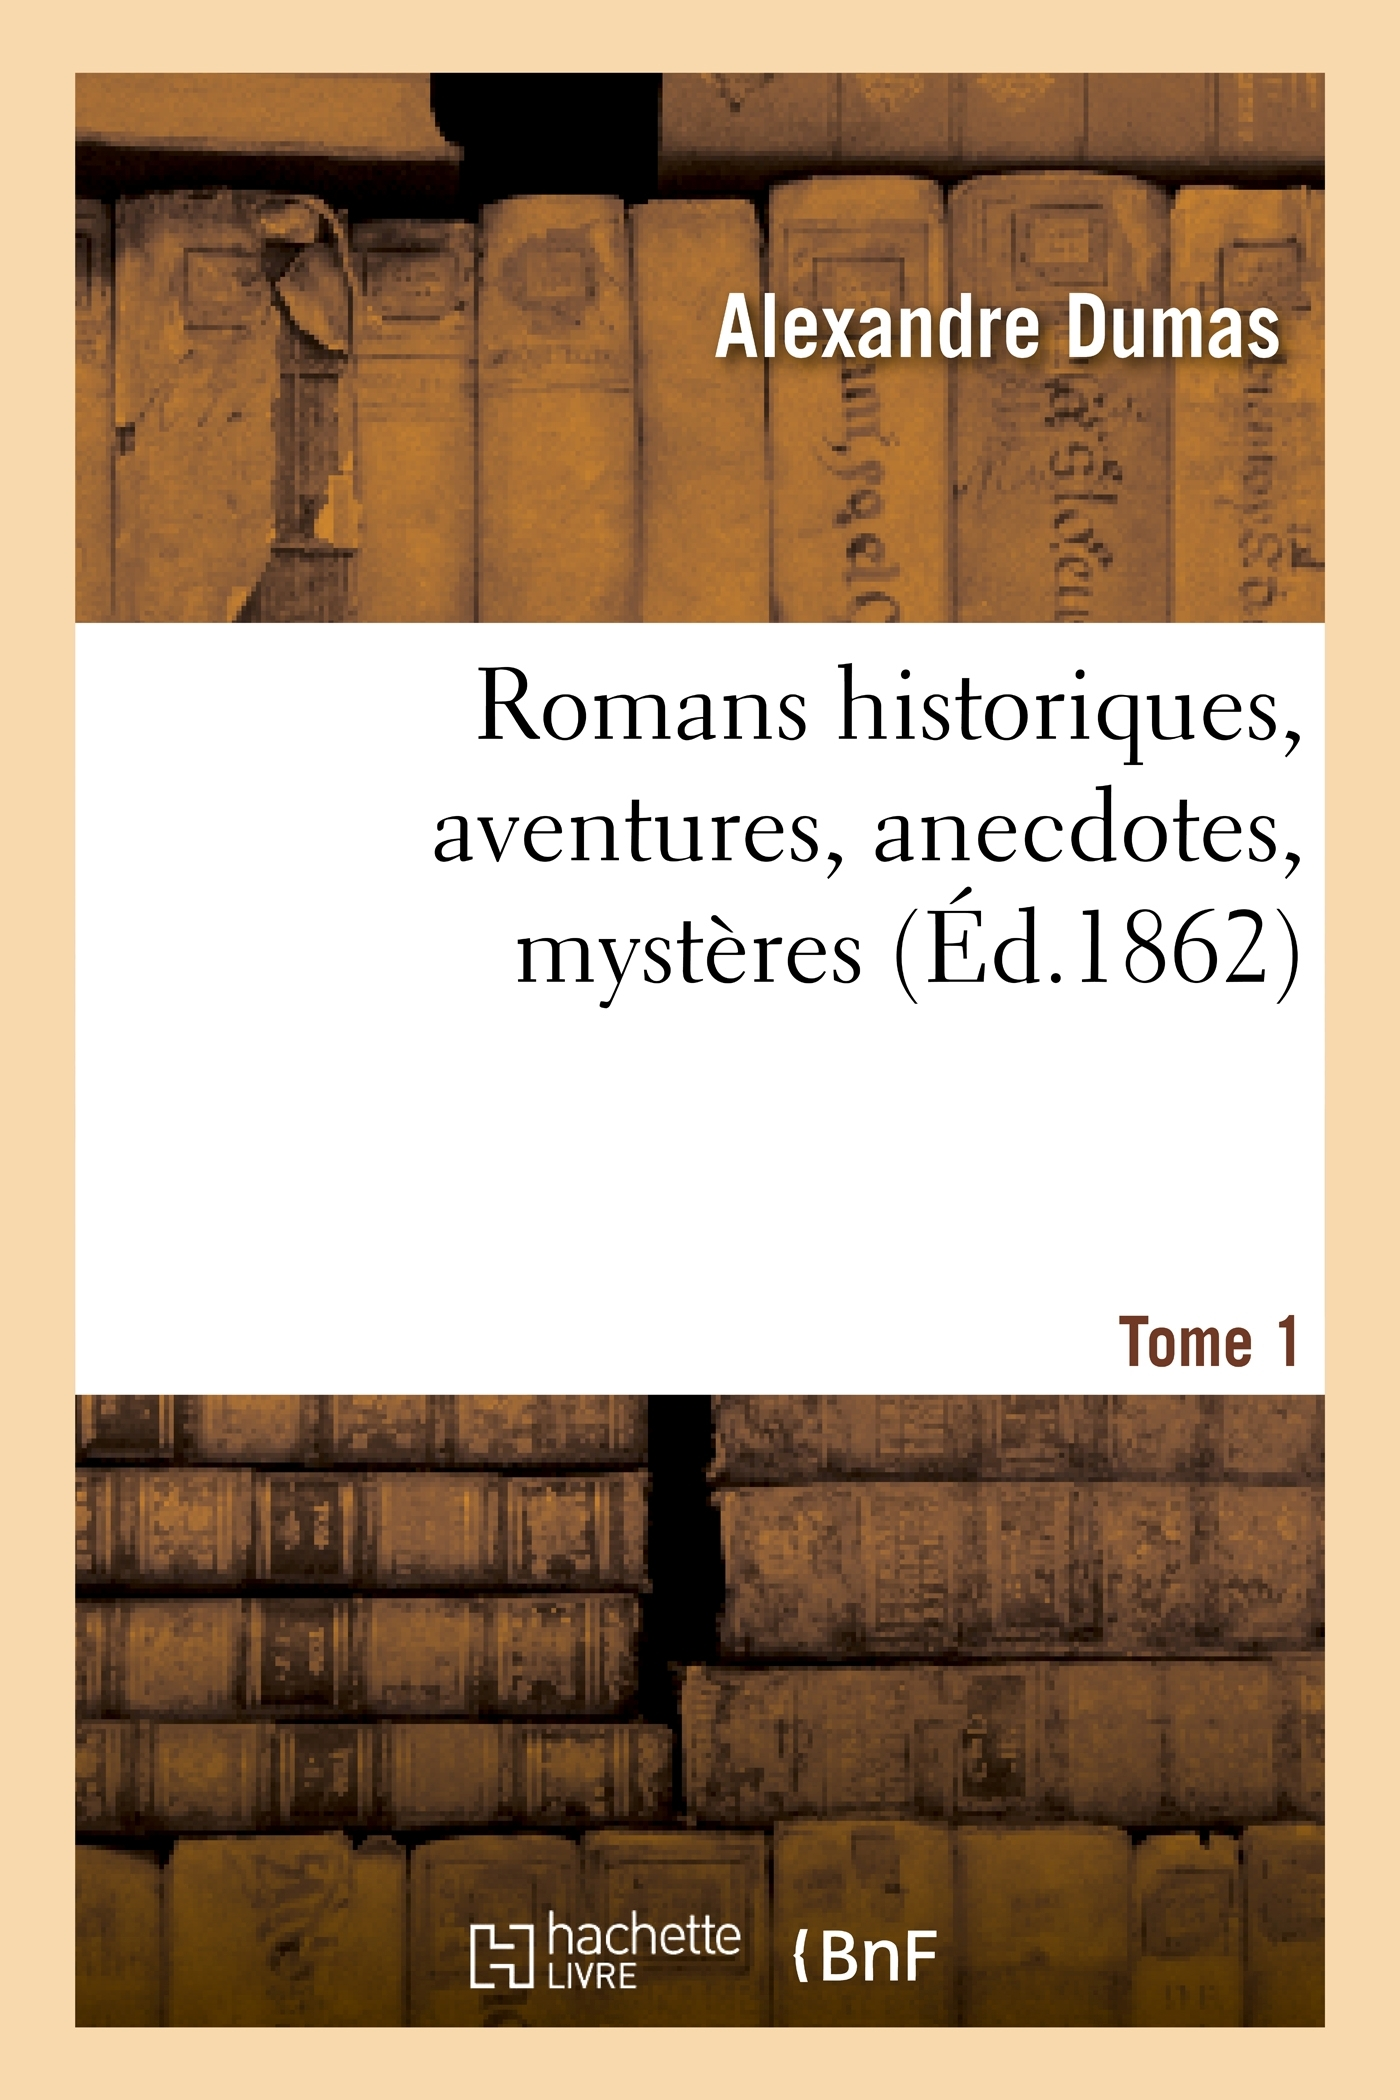 ROMANS HISTORIQUES, AVENTURES, ANECDOTES, MYSTERES.TOME 1